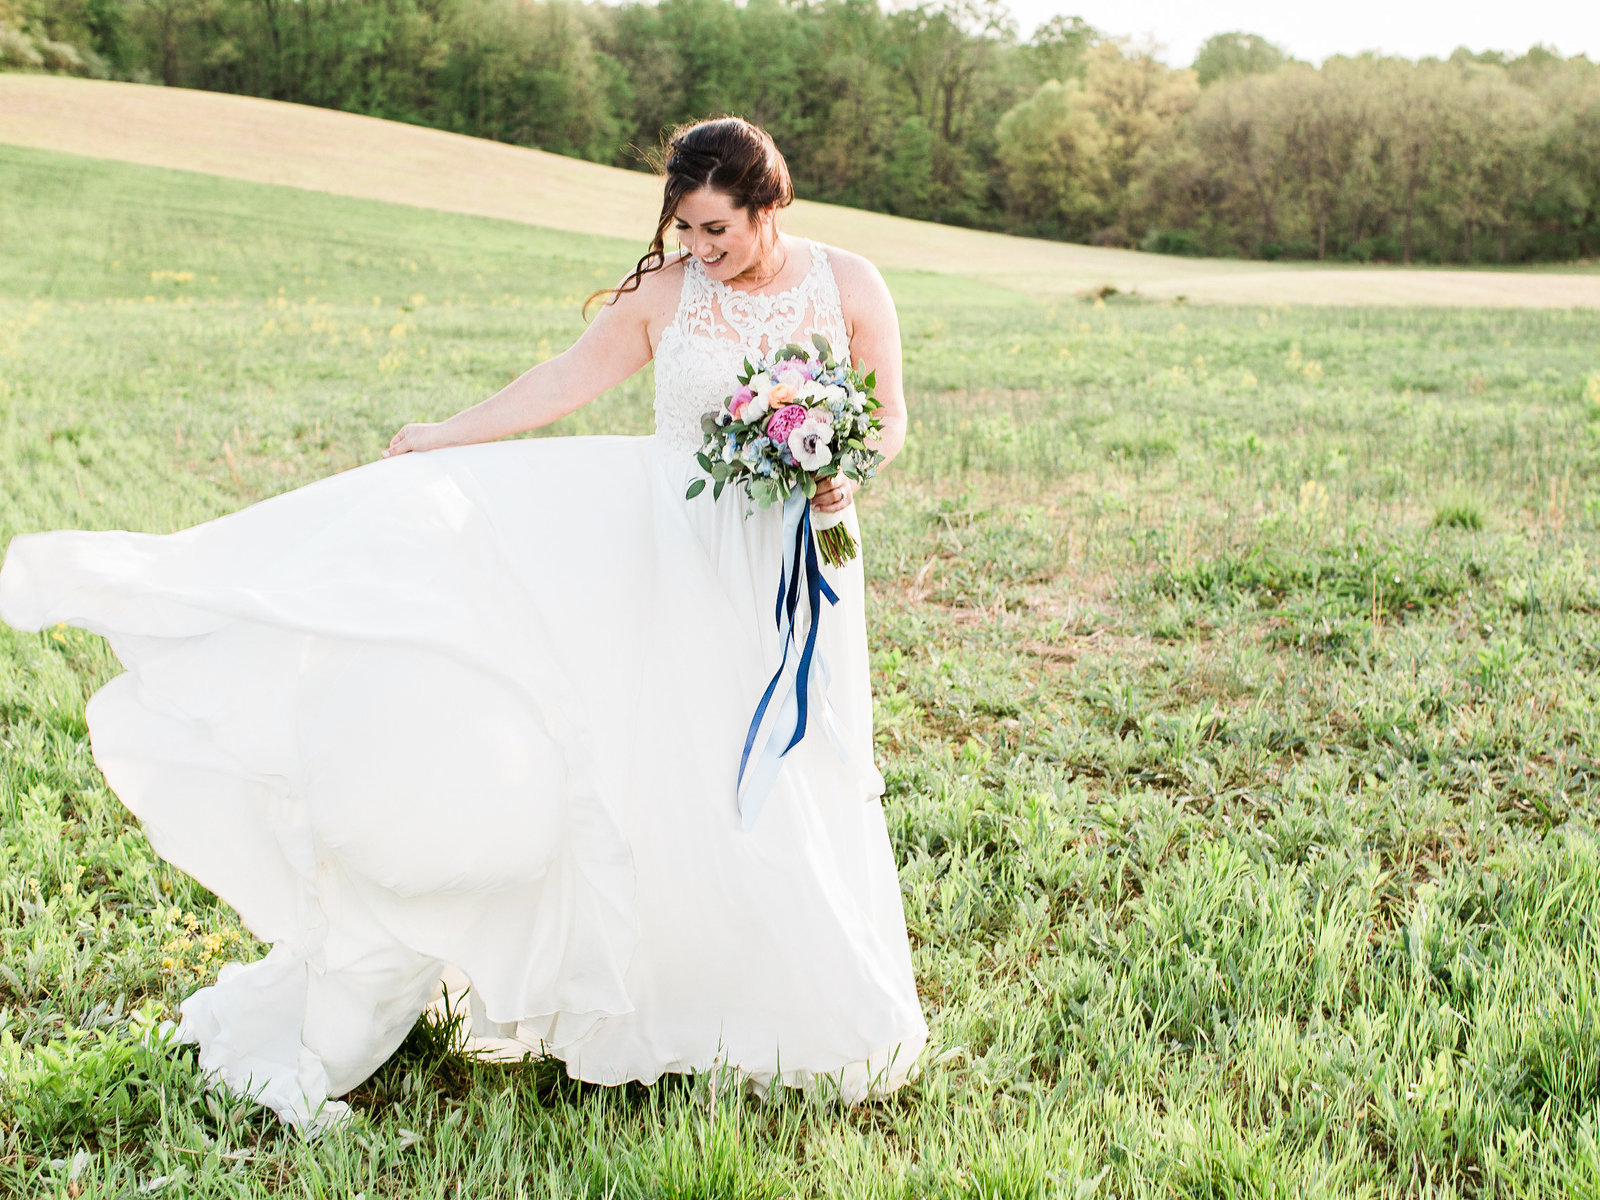 Bride in flowing dress, with colorful bouquet lifts her dress so it blows in the wind while she stands in a big field in Maryland